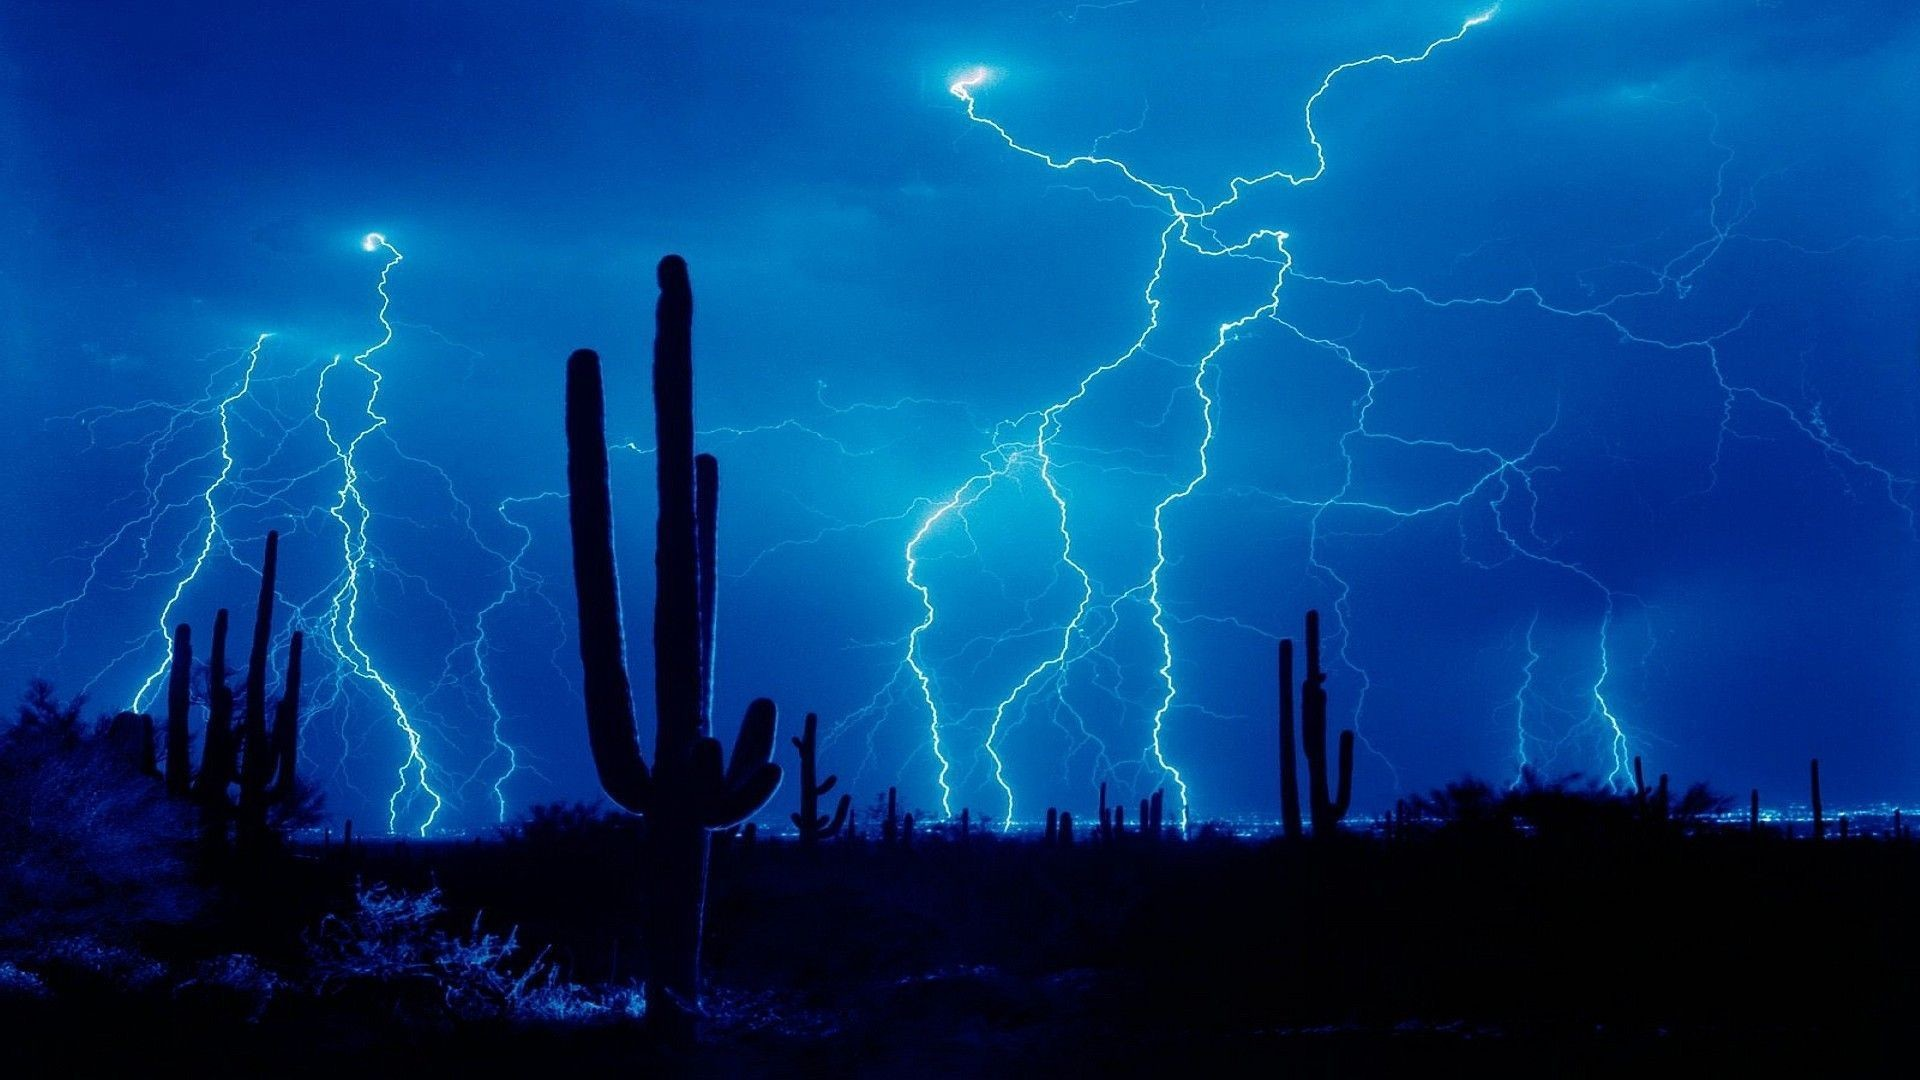 2560x1920 2560x1920 Thunder and Lightning Storms | Natural Thunder lightning HD Wallpapers [1920x1080] ( longwallpapers